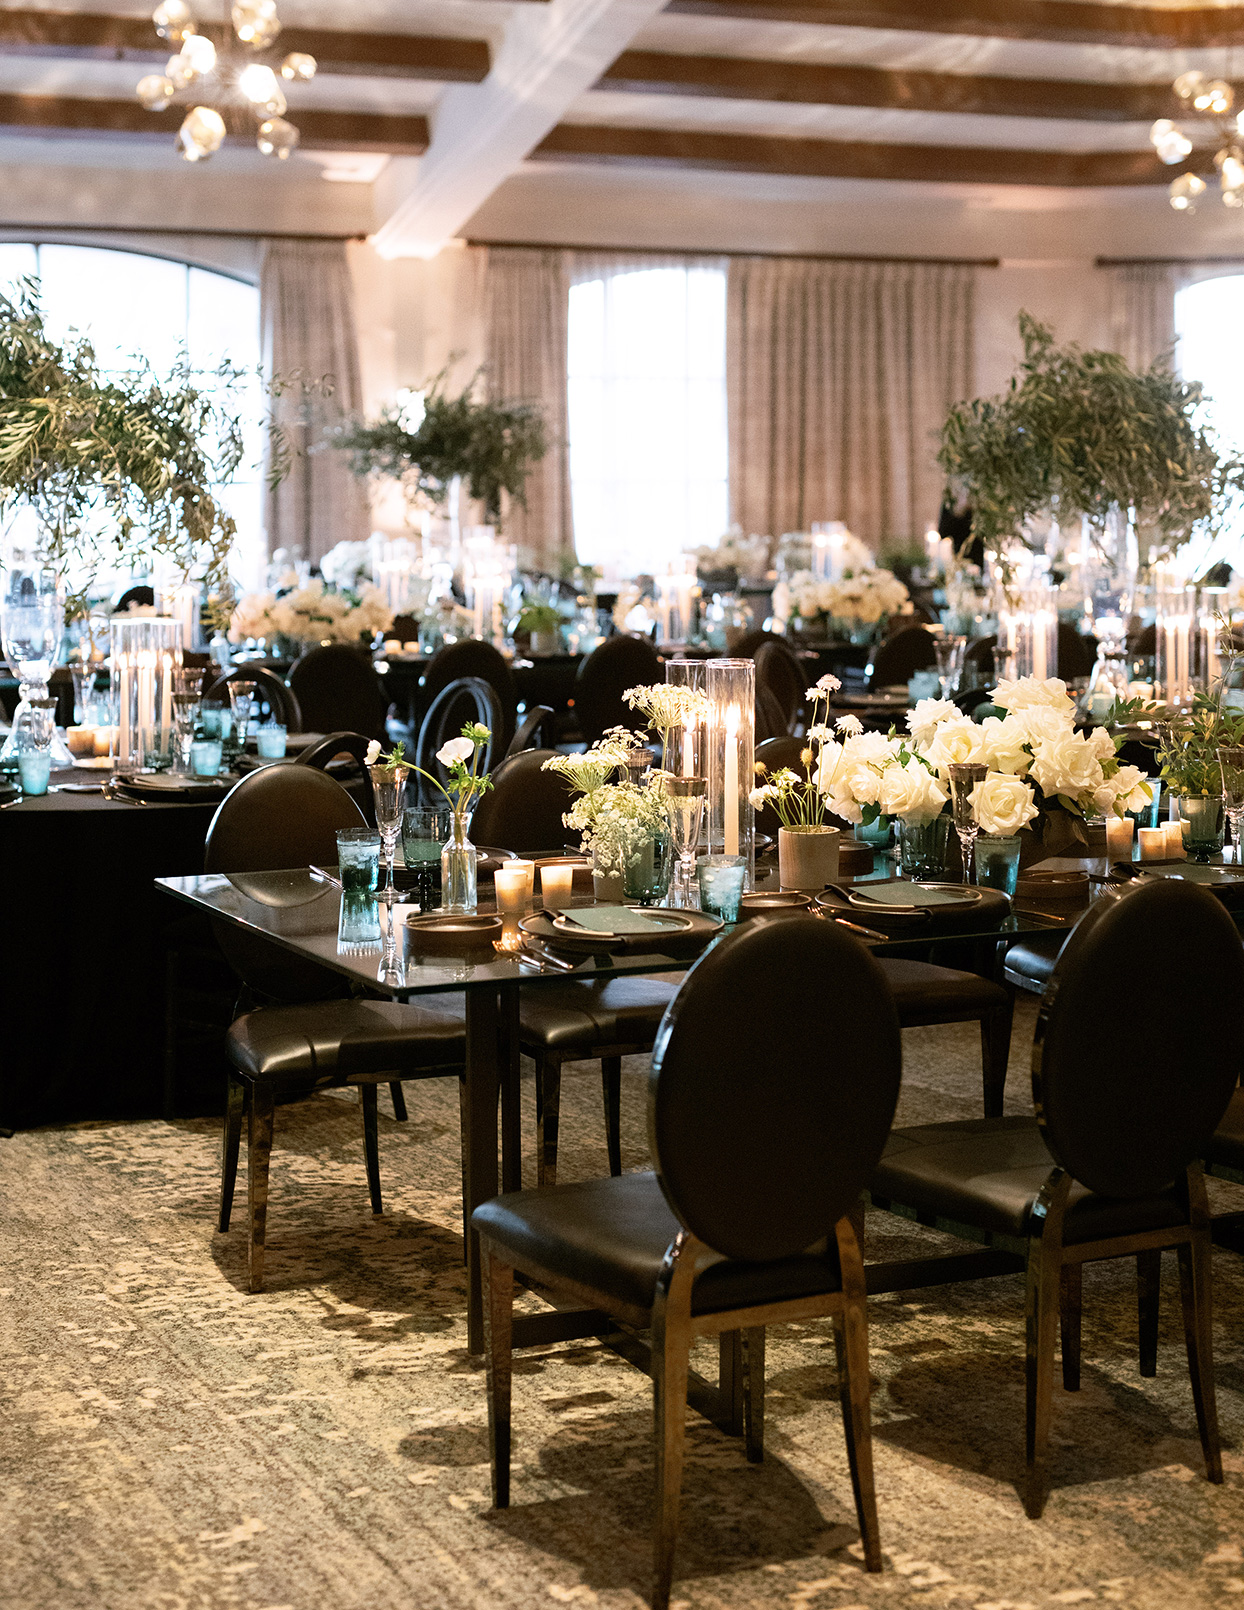 jason justin wedding reception black chairs and tables